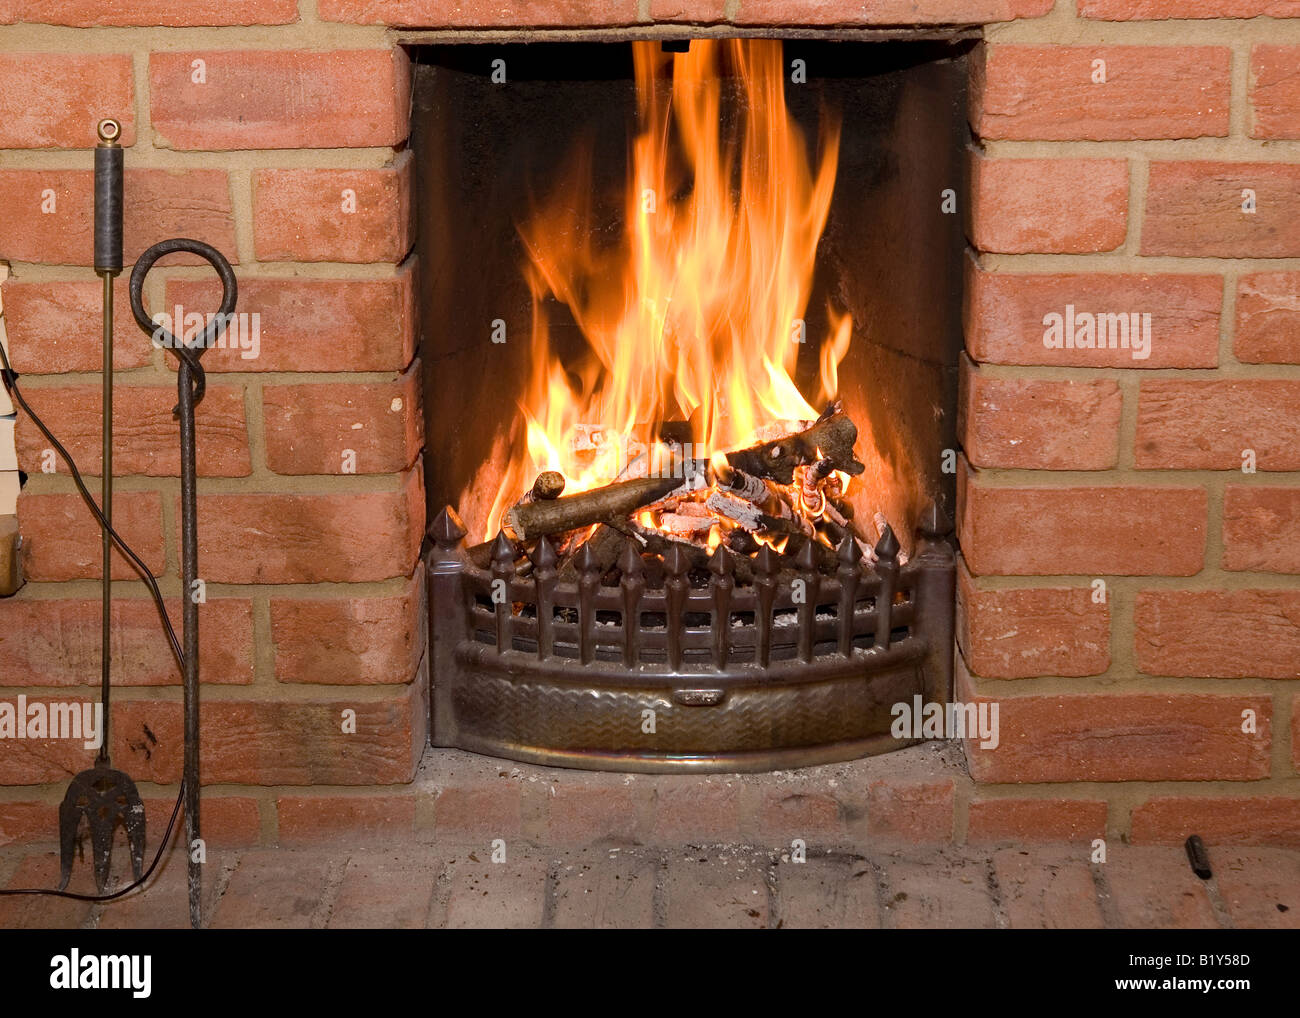 open fire burning in a brick fireplace stock photo 18421885 alamy rh alamy com Fire Brick for Fireplaces Lowe's Brick Tile Fireplace